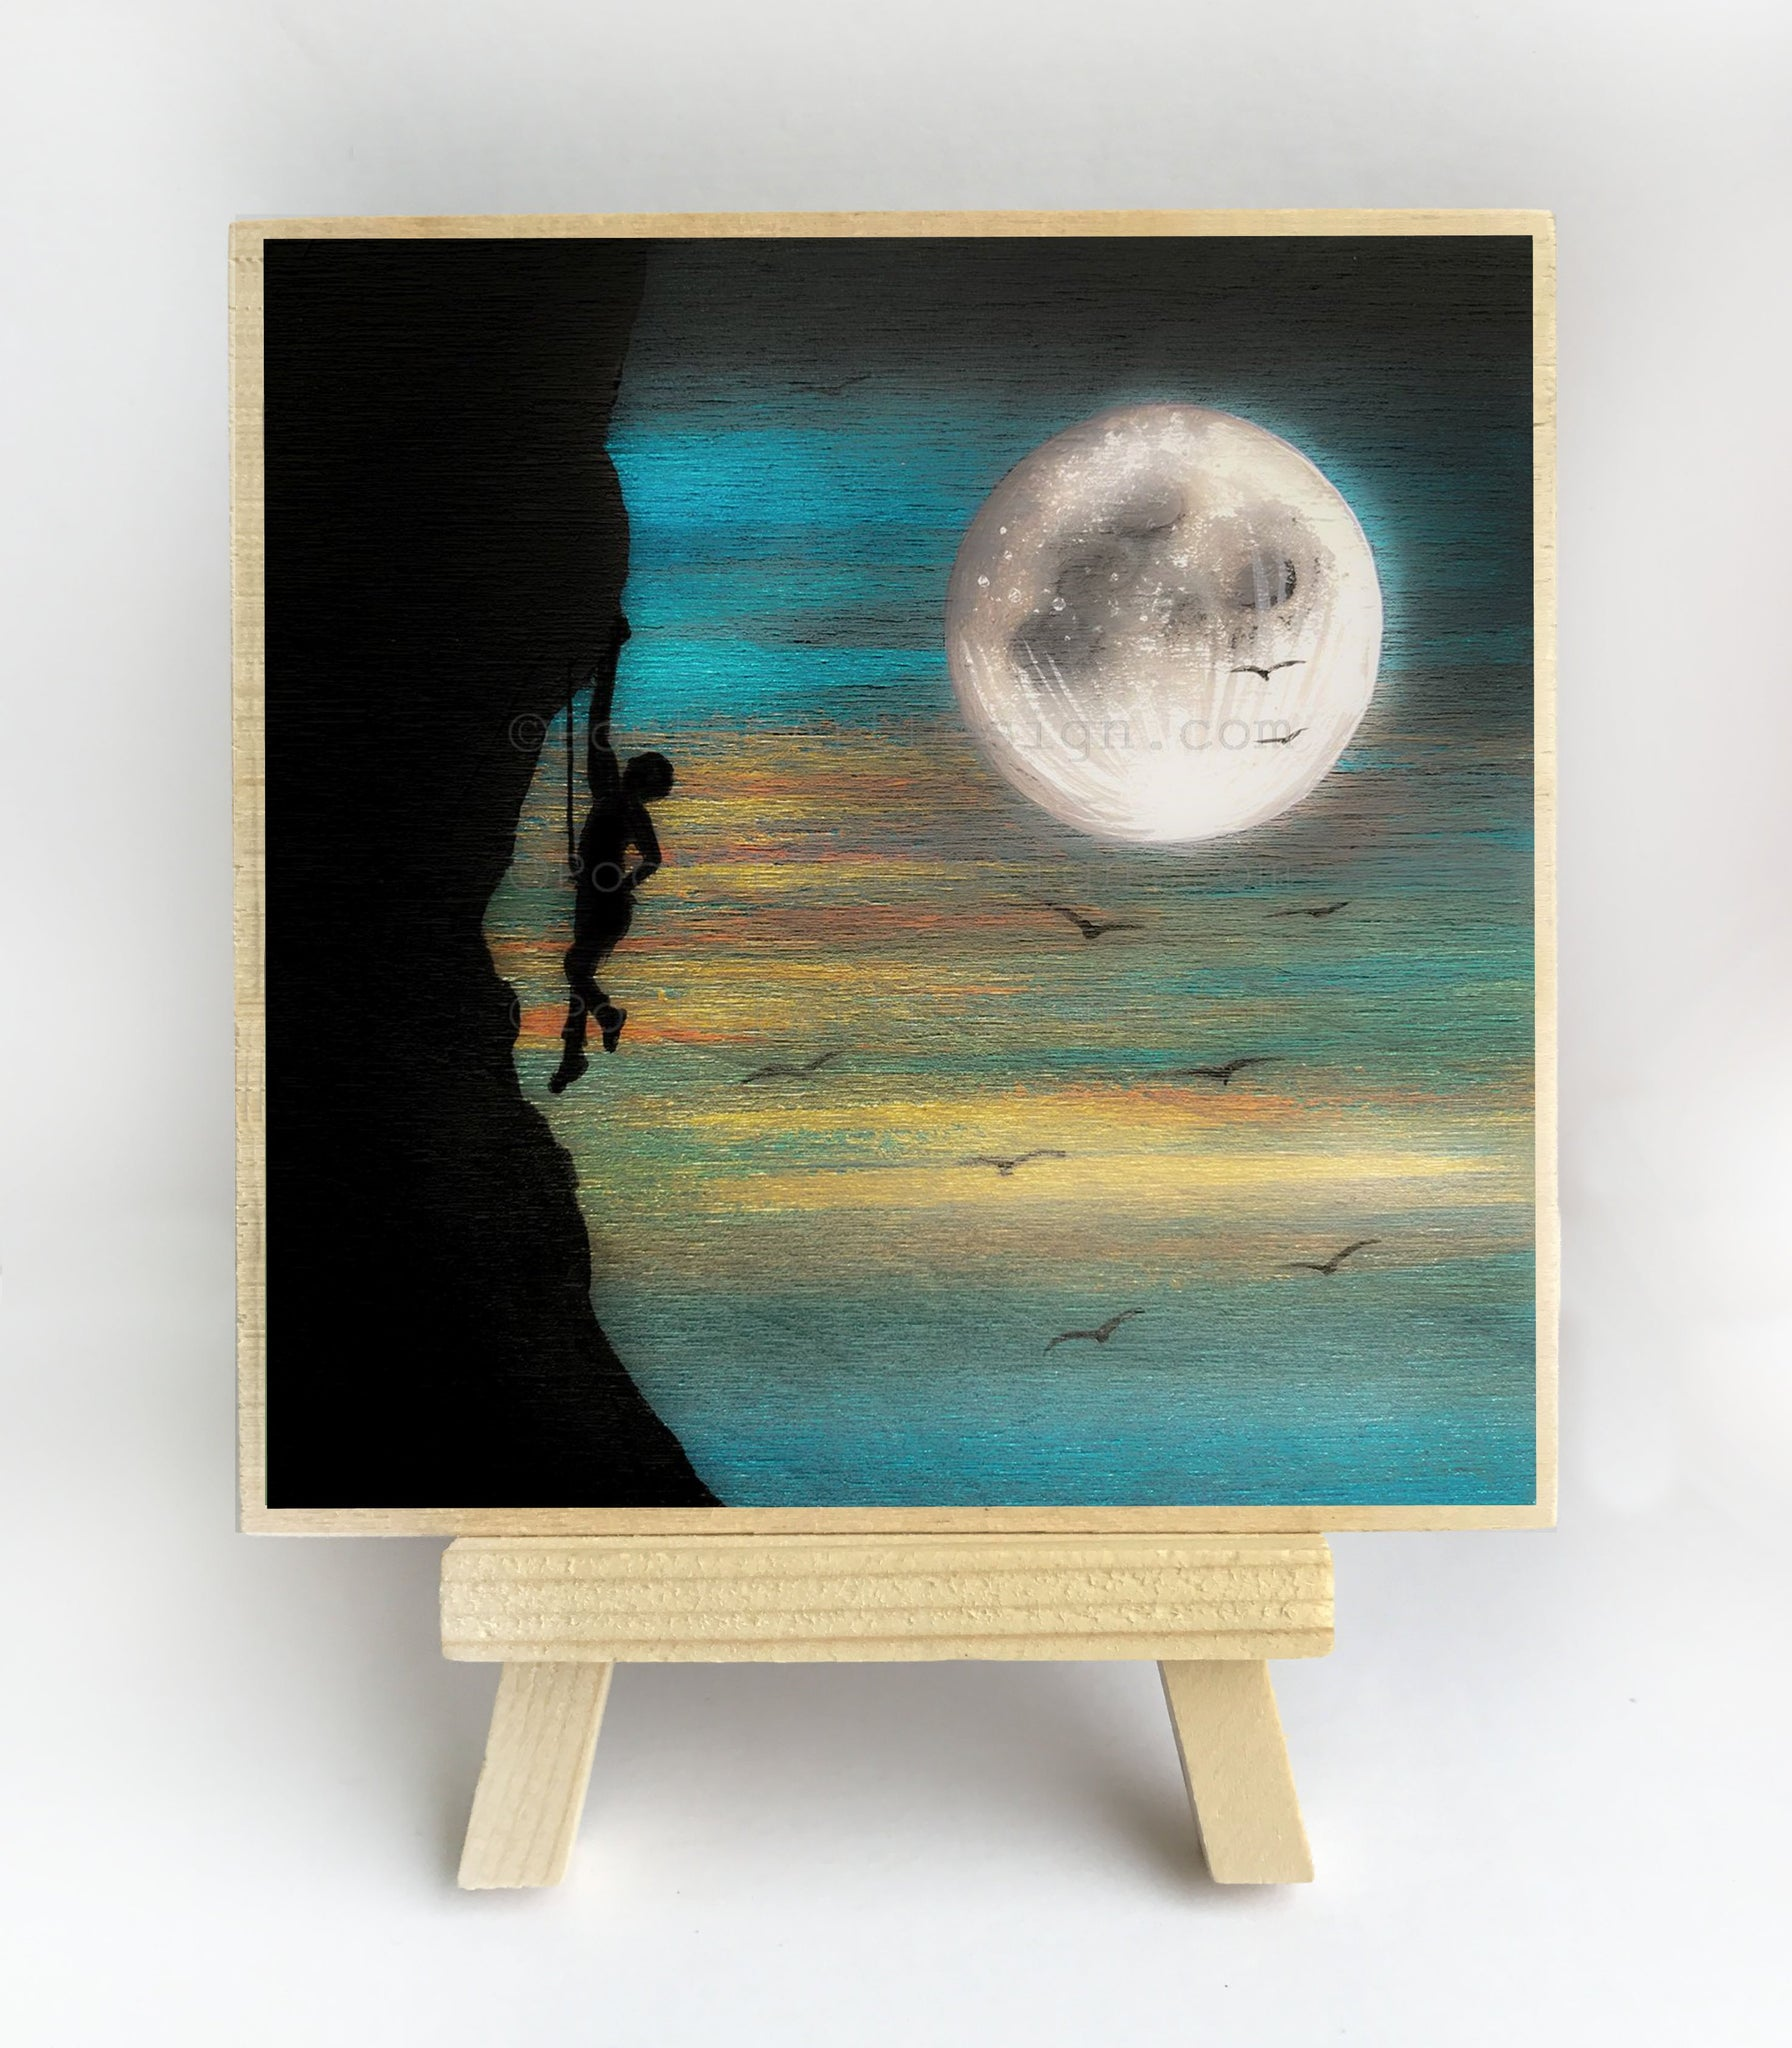 Rock climbing - full moon - silhouette - original miniature art print on 4 x 4 wood-Print-Easel Wood-PocketArtDesigns-Original Art-wall rt